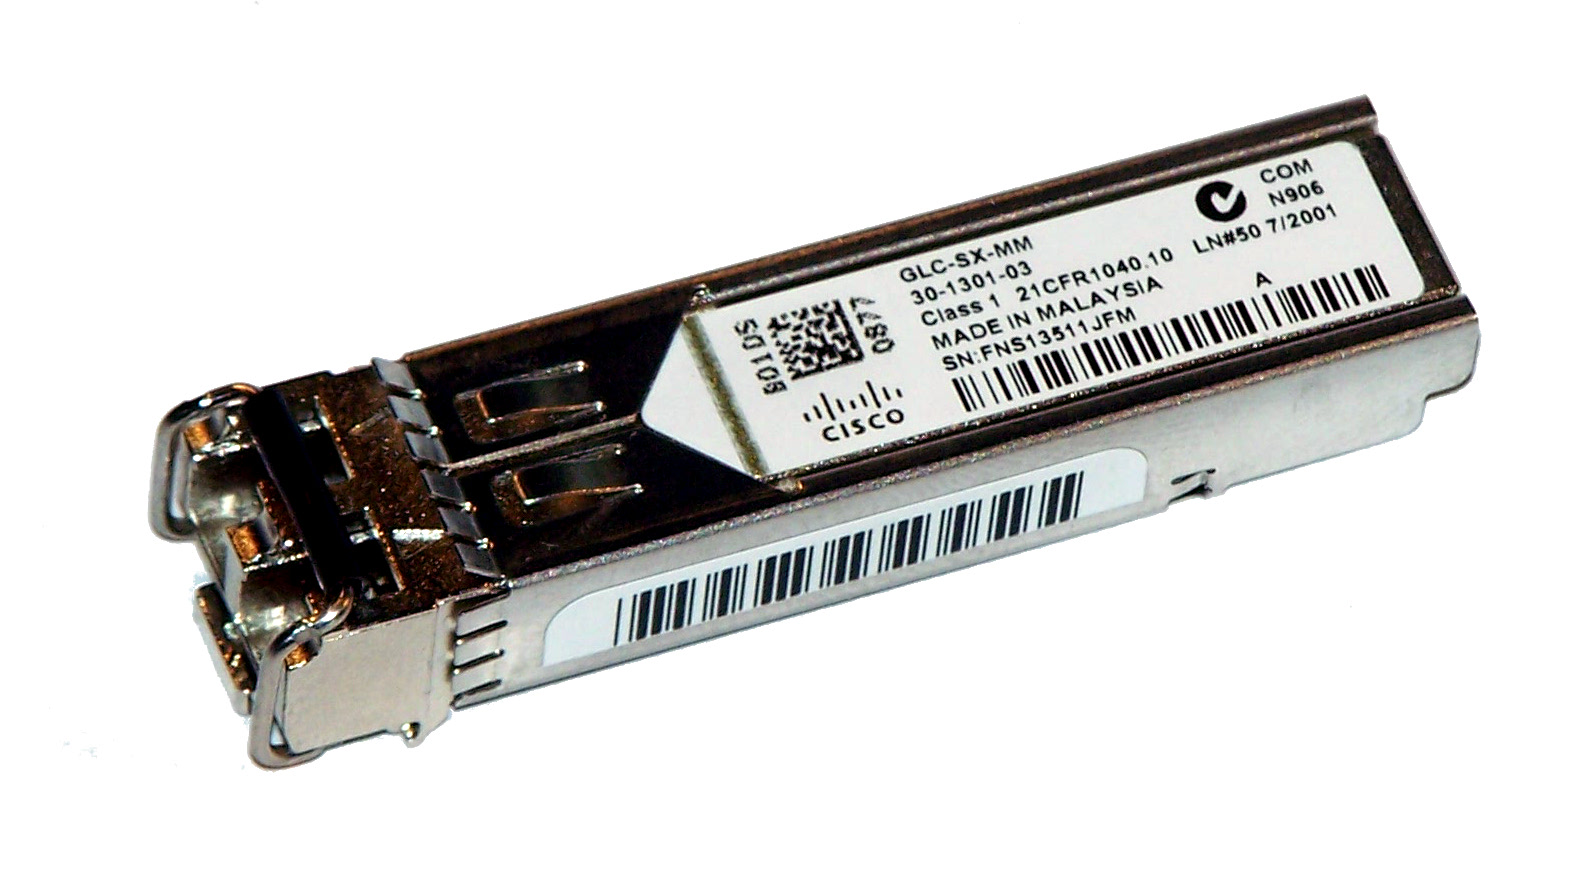 Cisco 30-1301-03 1000BASE-SX SFP 850nm GBIC GLC-SX-MM= Transceiver